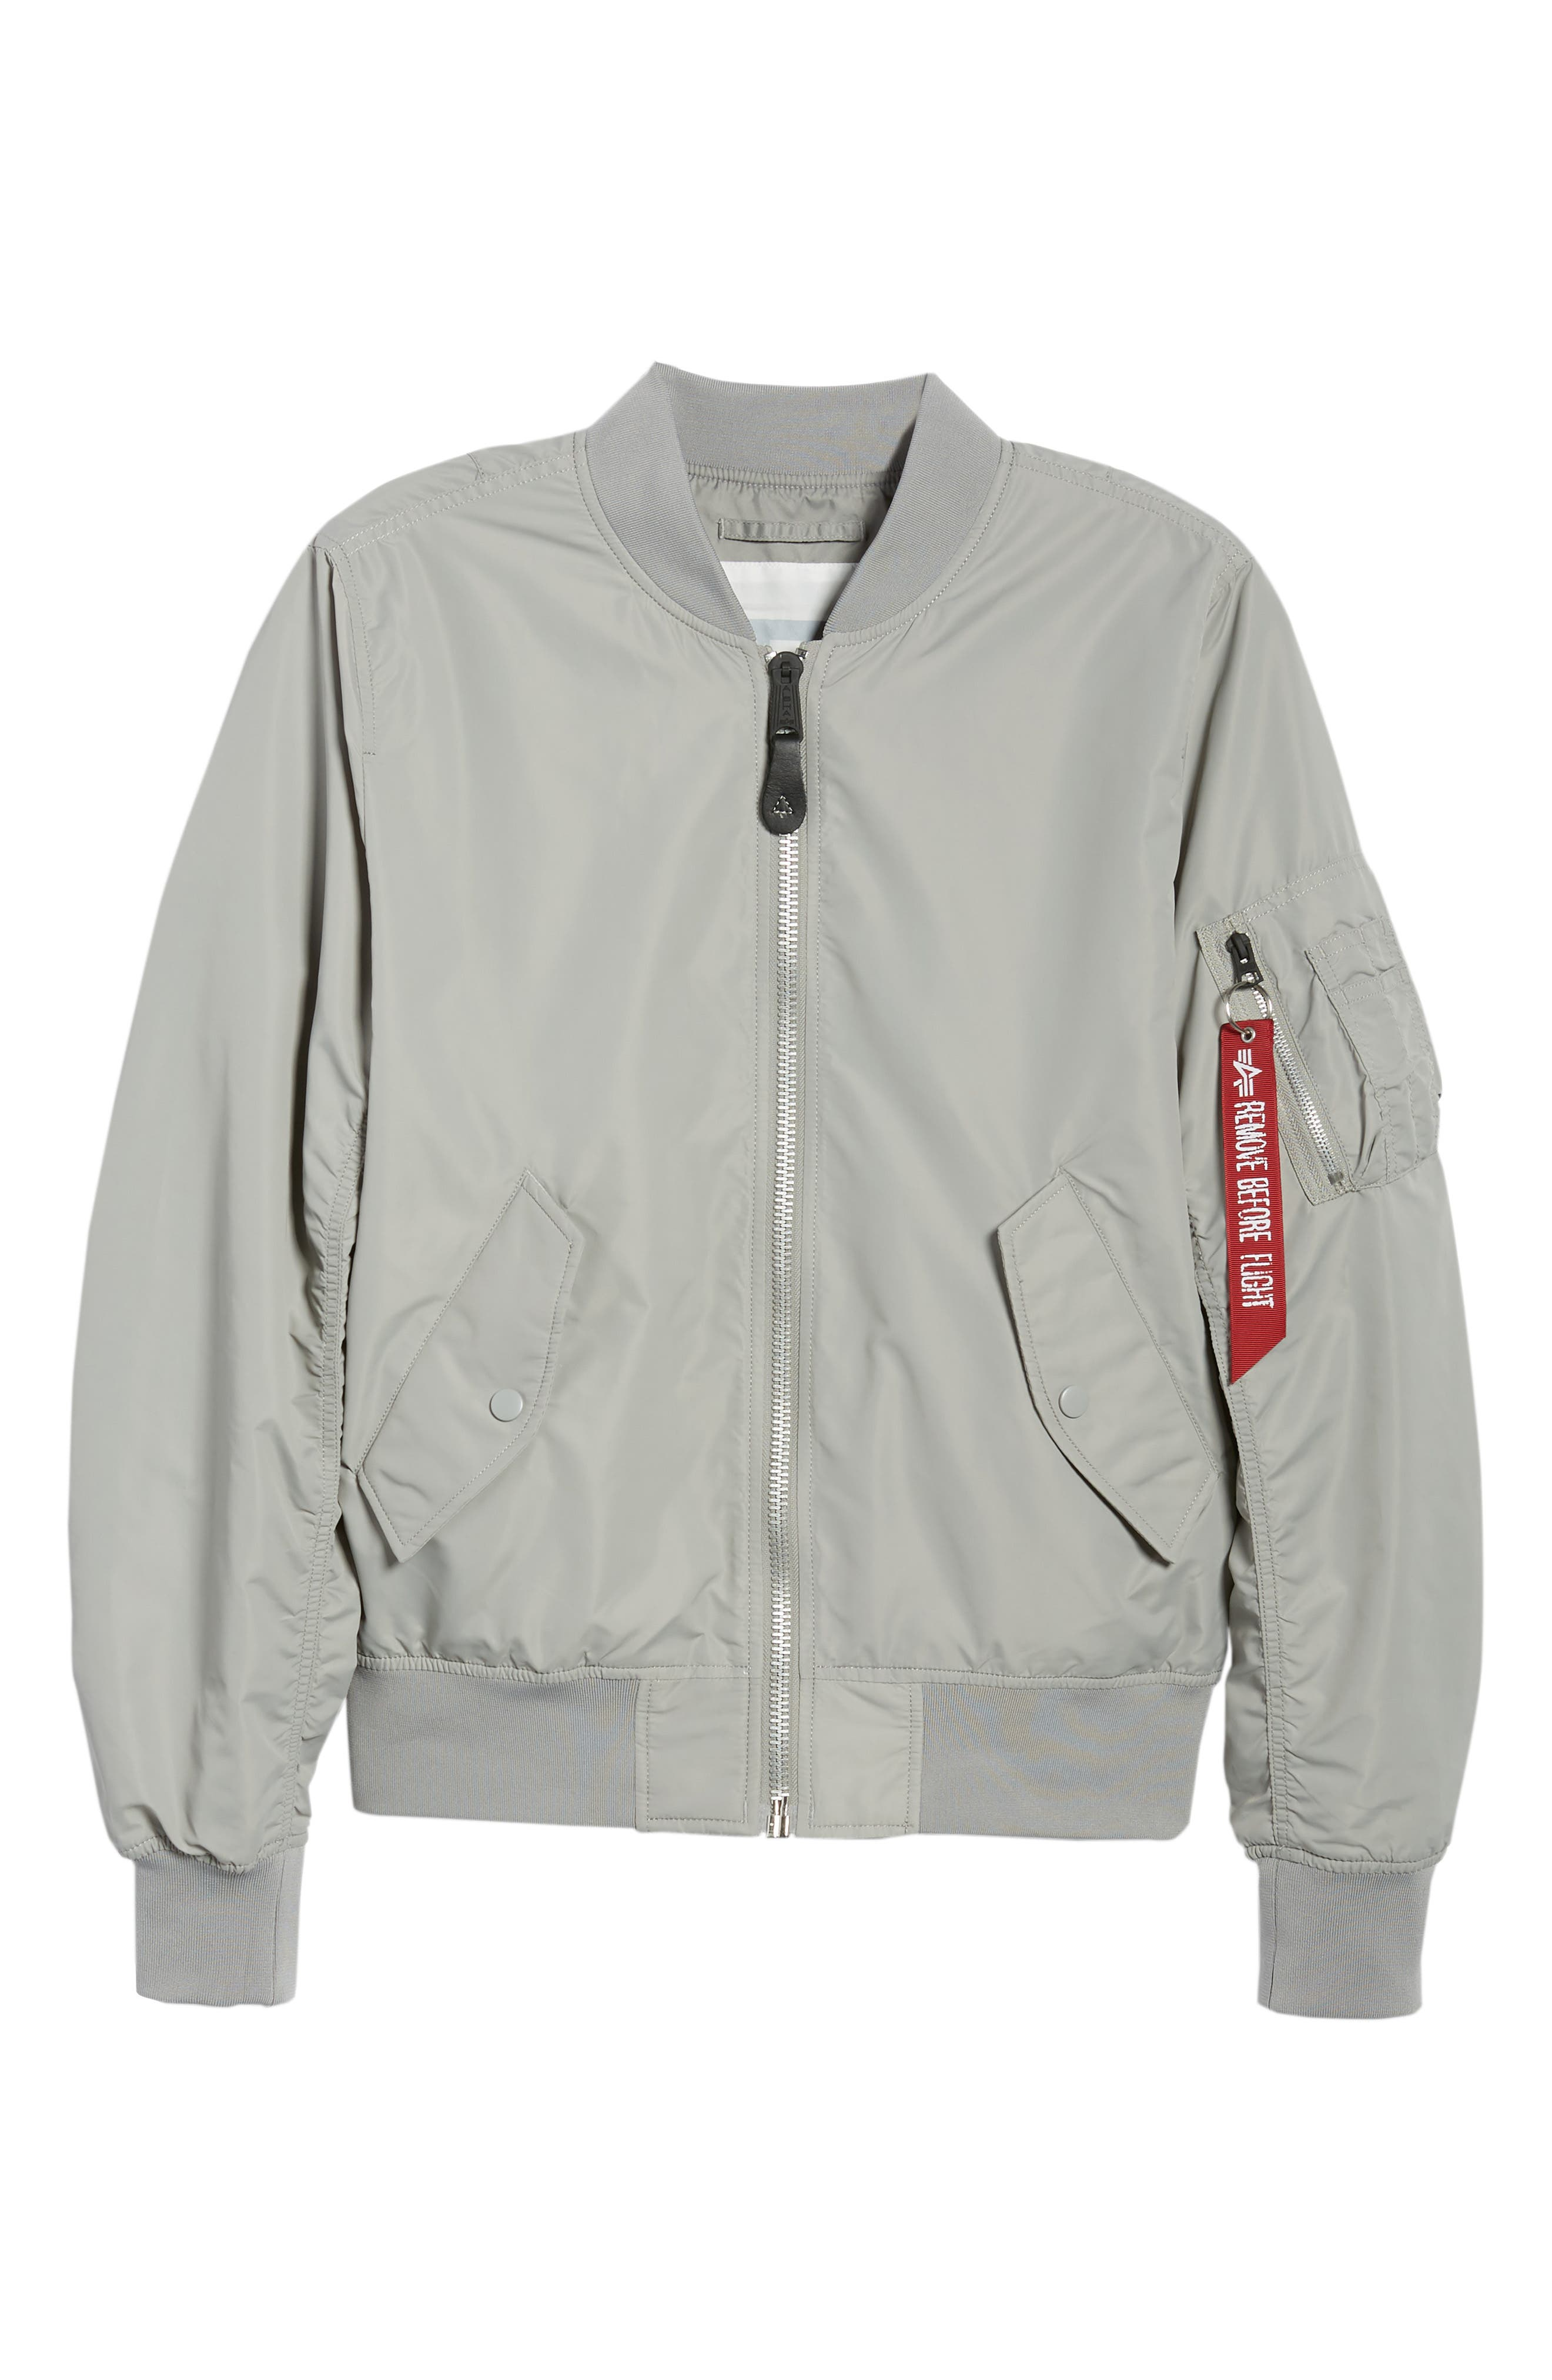 ALPHA INDUSTRIES,                             'L-2B - Dragonfly' Water Resistant Reversible Flight Jacket,                             Alternate thumbnail 5, color,                             020